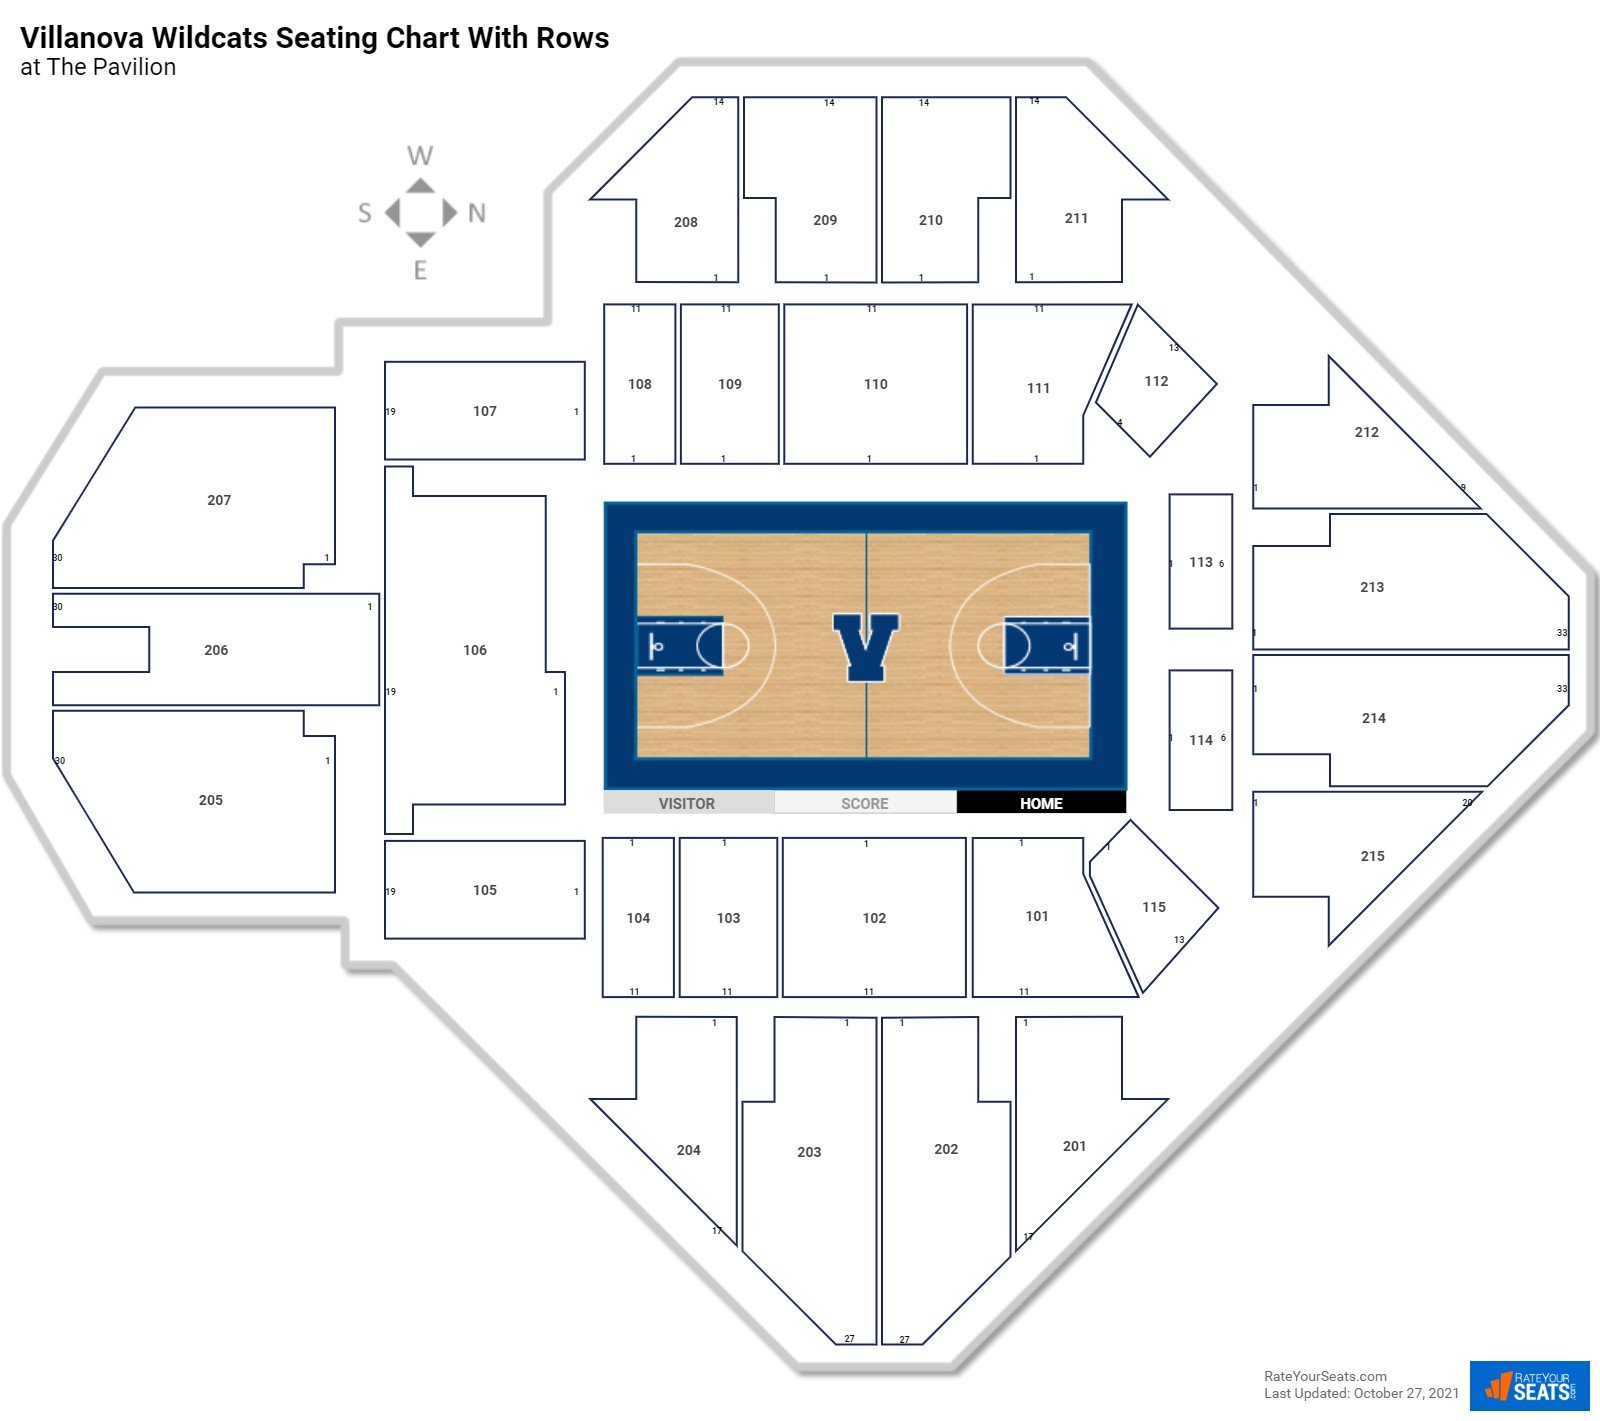 The Pavilion seating chart with rows